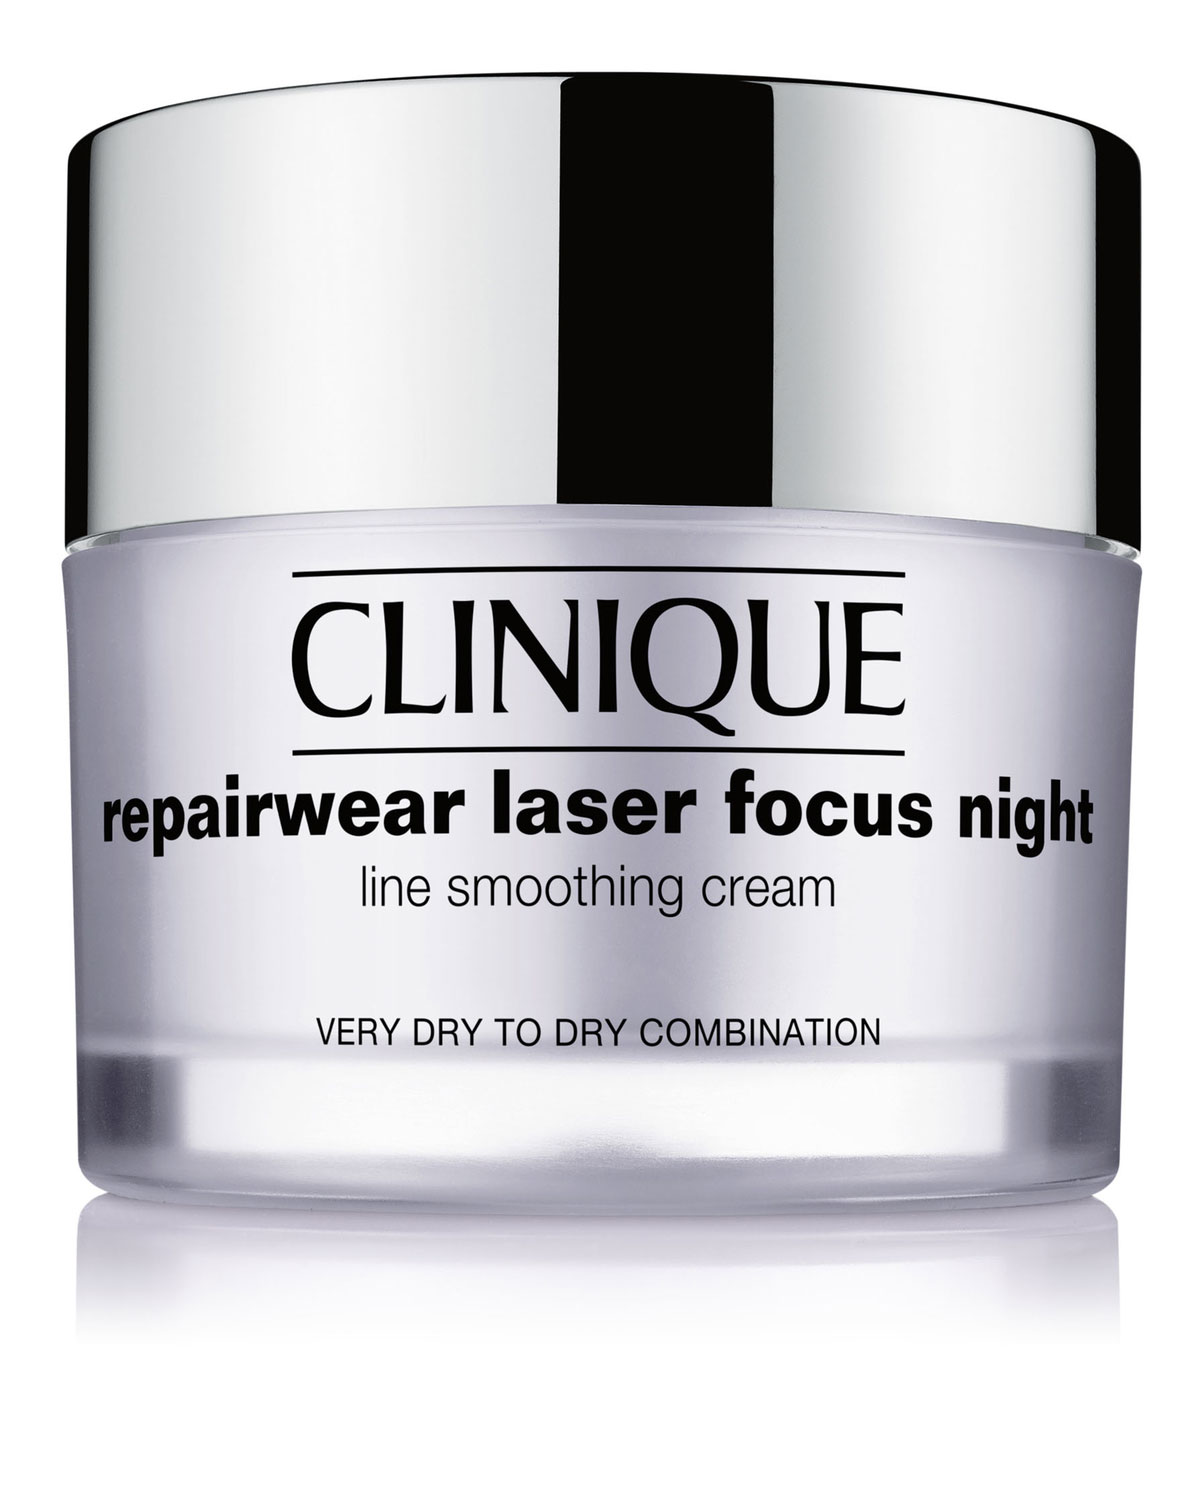 Repairwear Laser Focus Night Line Smoothing Cream For Very Dry To Dry Combination Skin 1.7 Oz/ 50 Ml